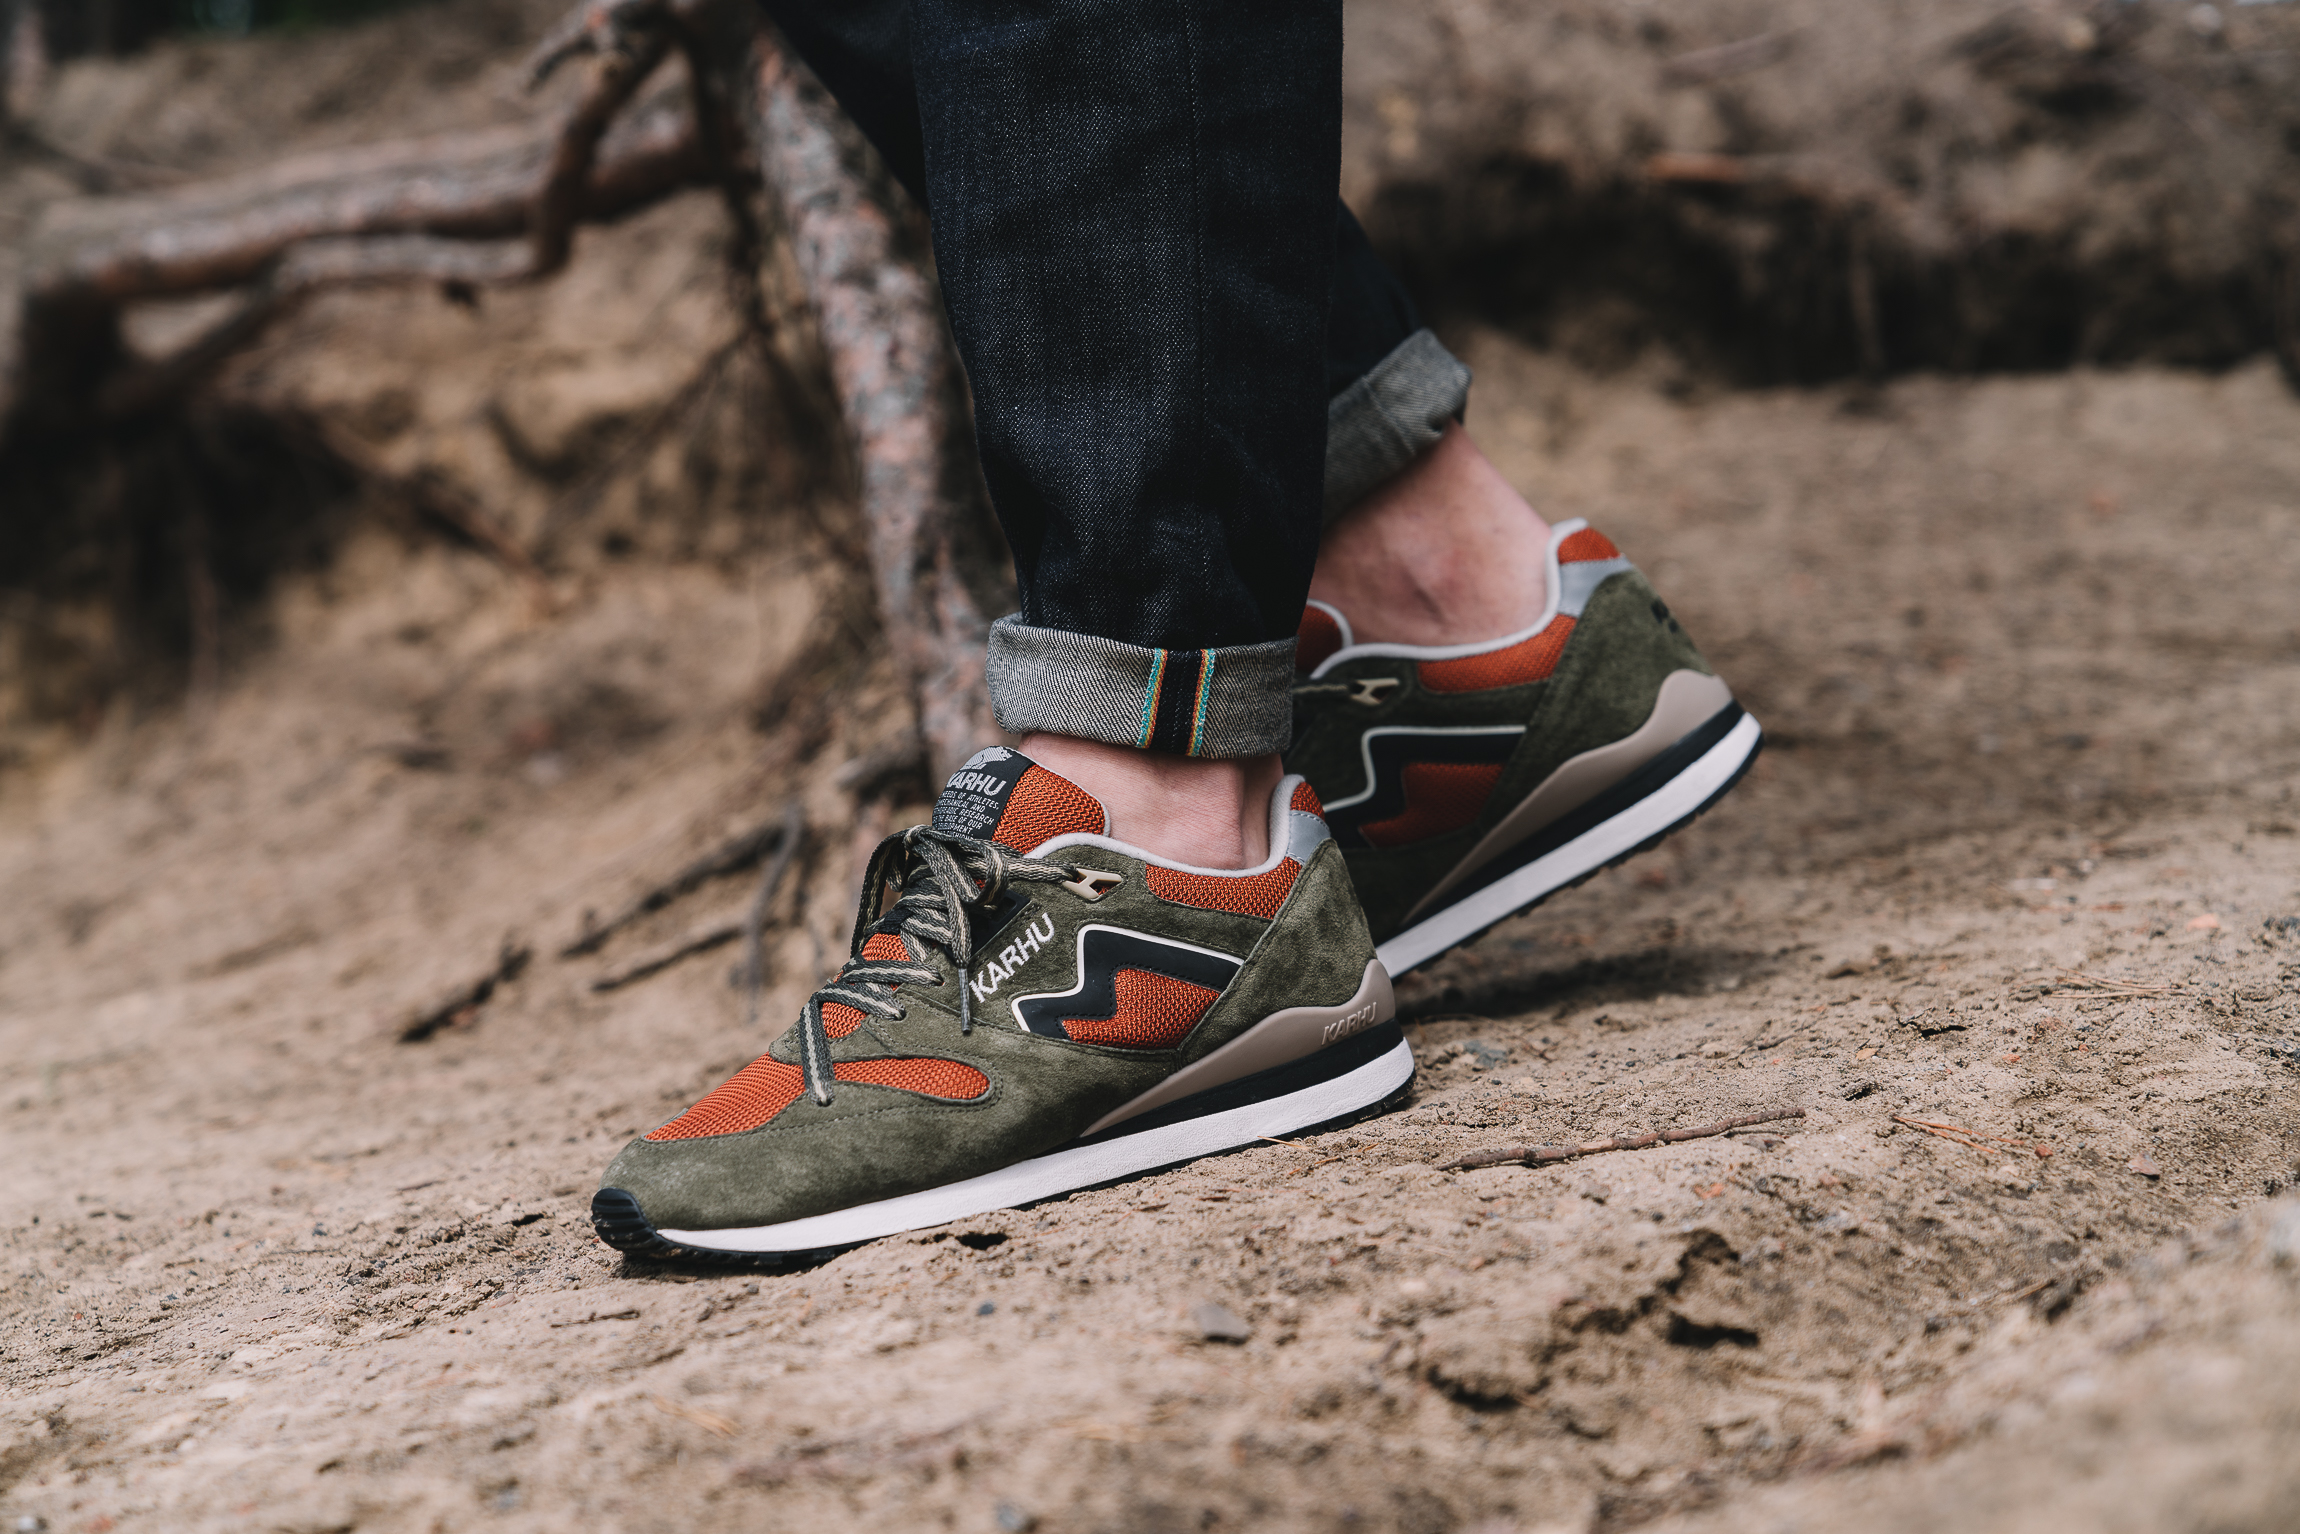 Runnerwally_for_Karhu_outdoor_pack-56